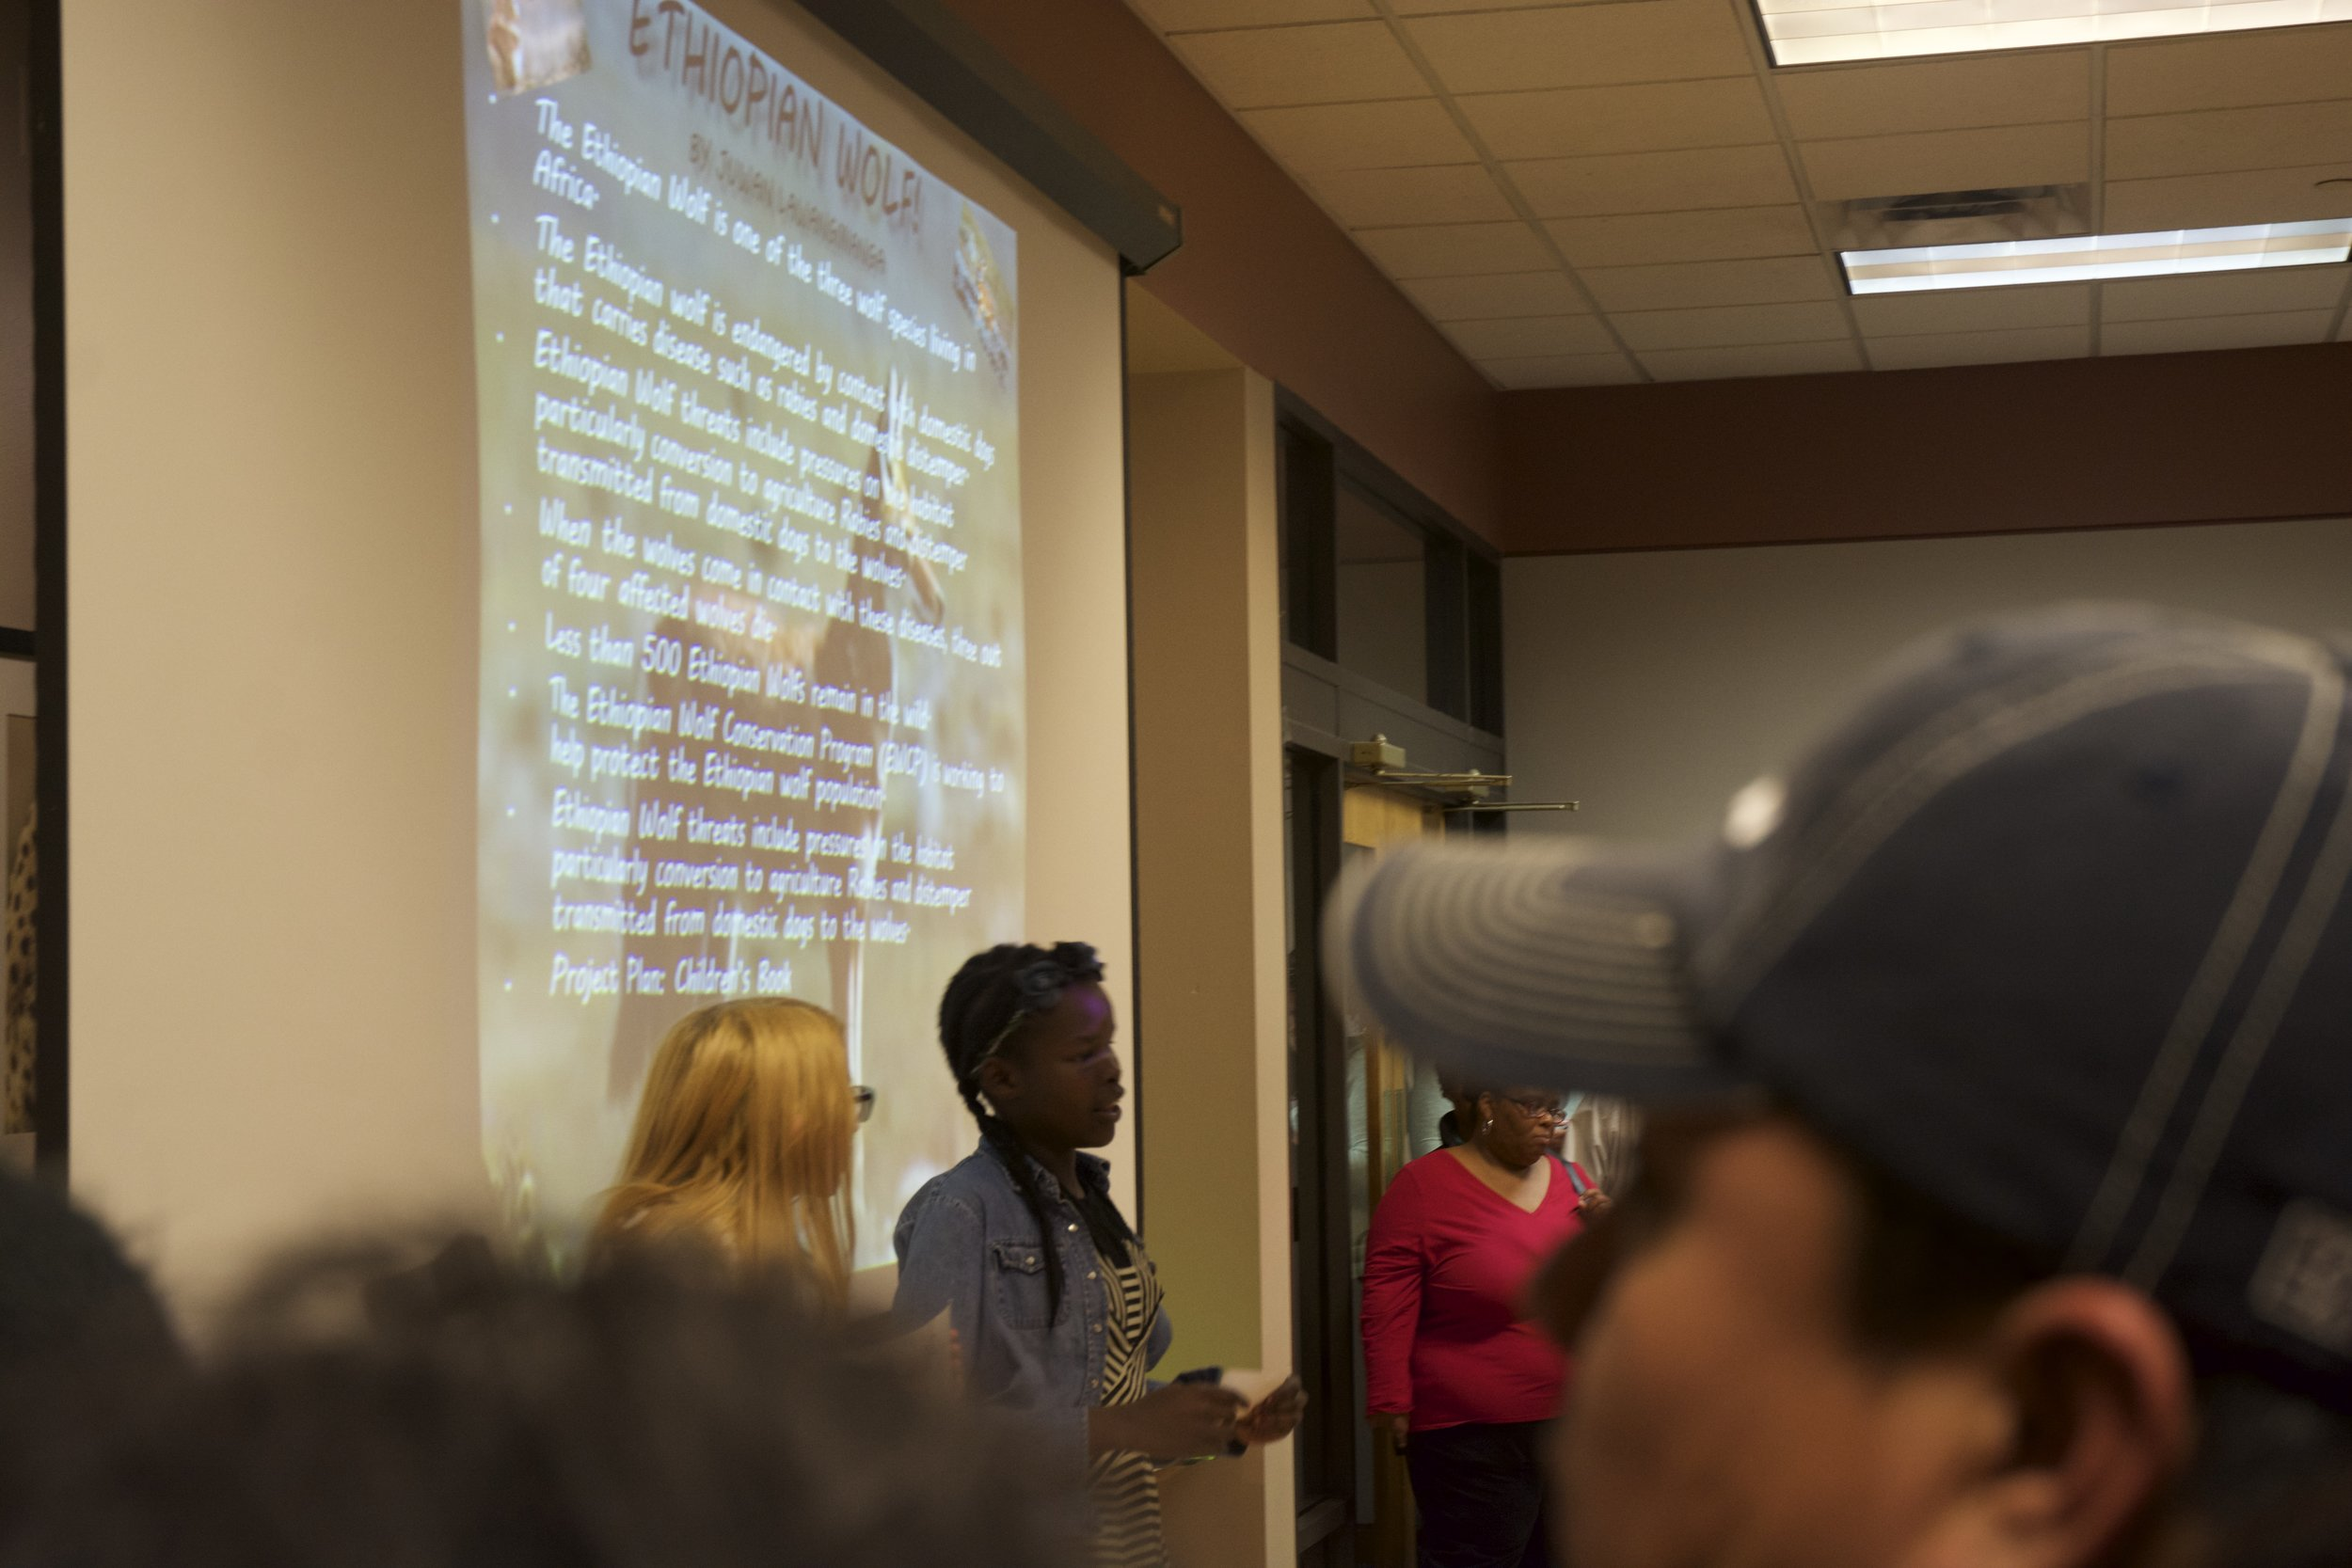 Caption: Juwan Lwangmianga, a seventh grade student at Croft Design Center Middle Prep, speaks to a packed room at the Nashville Zoo about Ethiopian wolves.